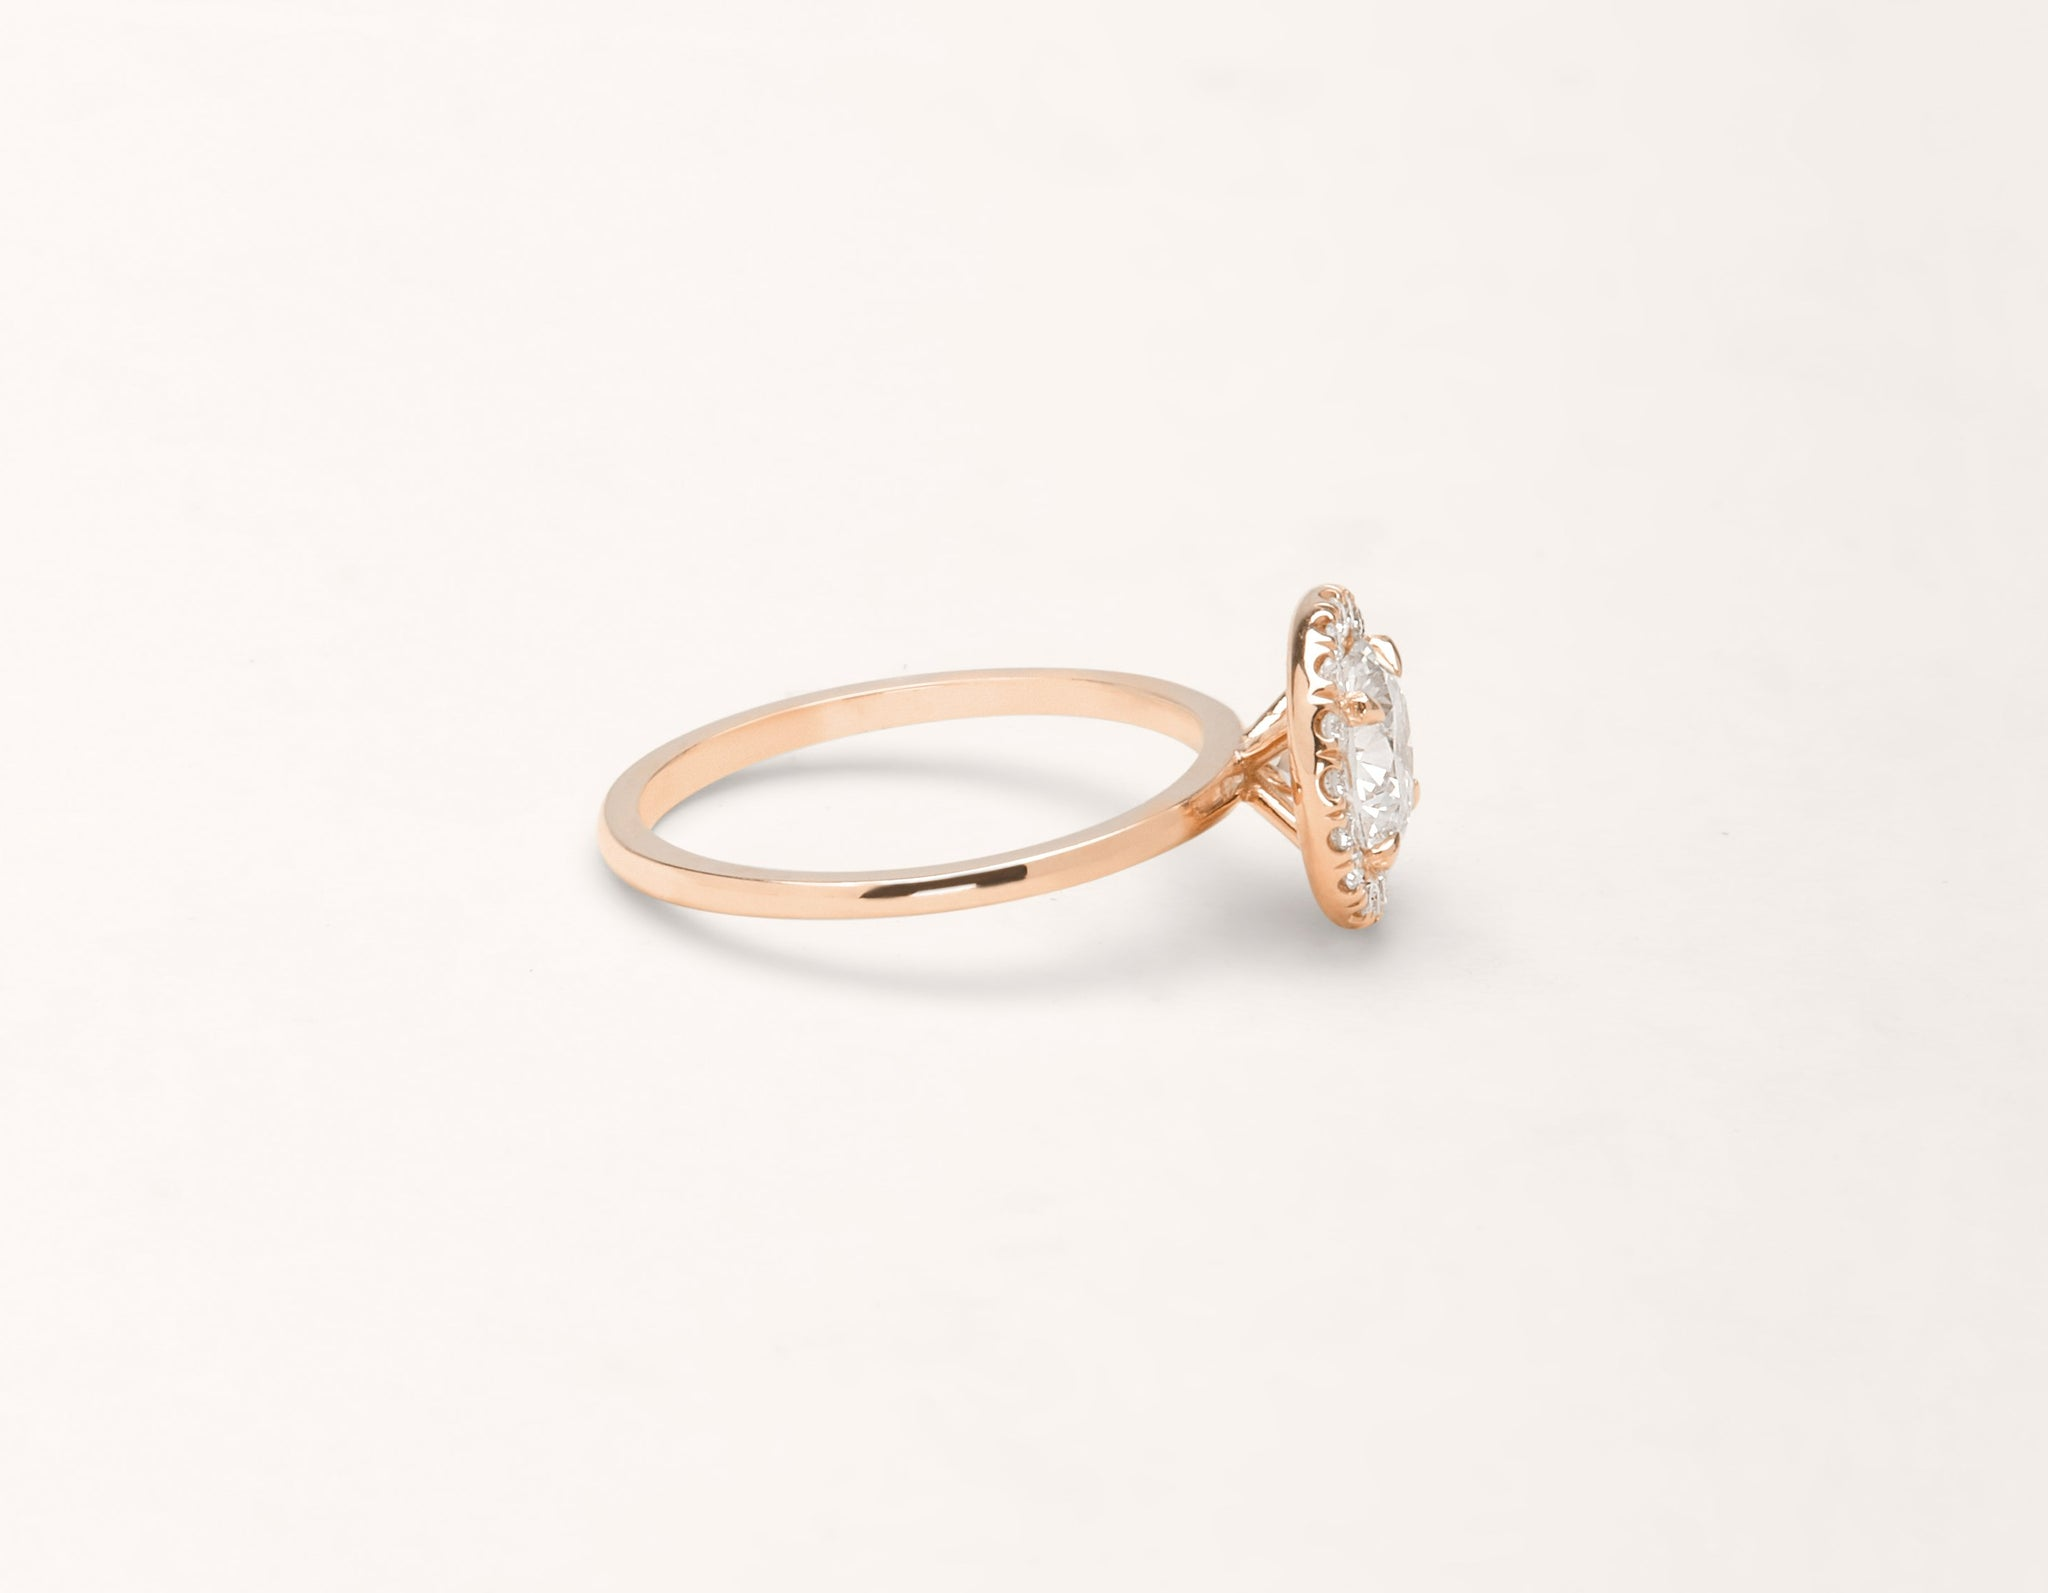 Vrai and Oro modern classic The Halo diamond engagement ring 18k solid rose gold sustainable jewelry